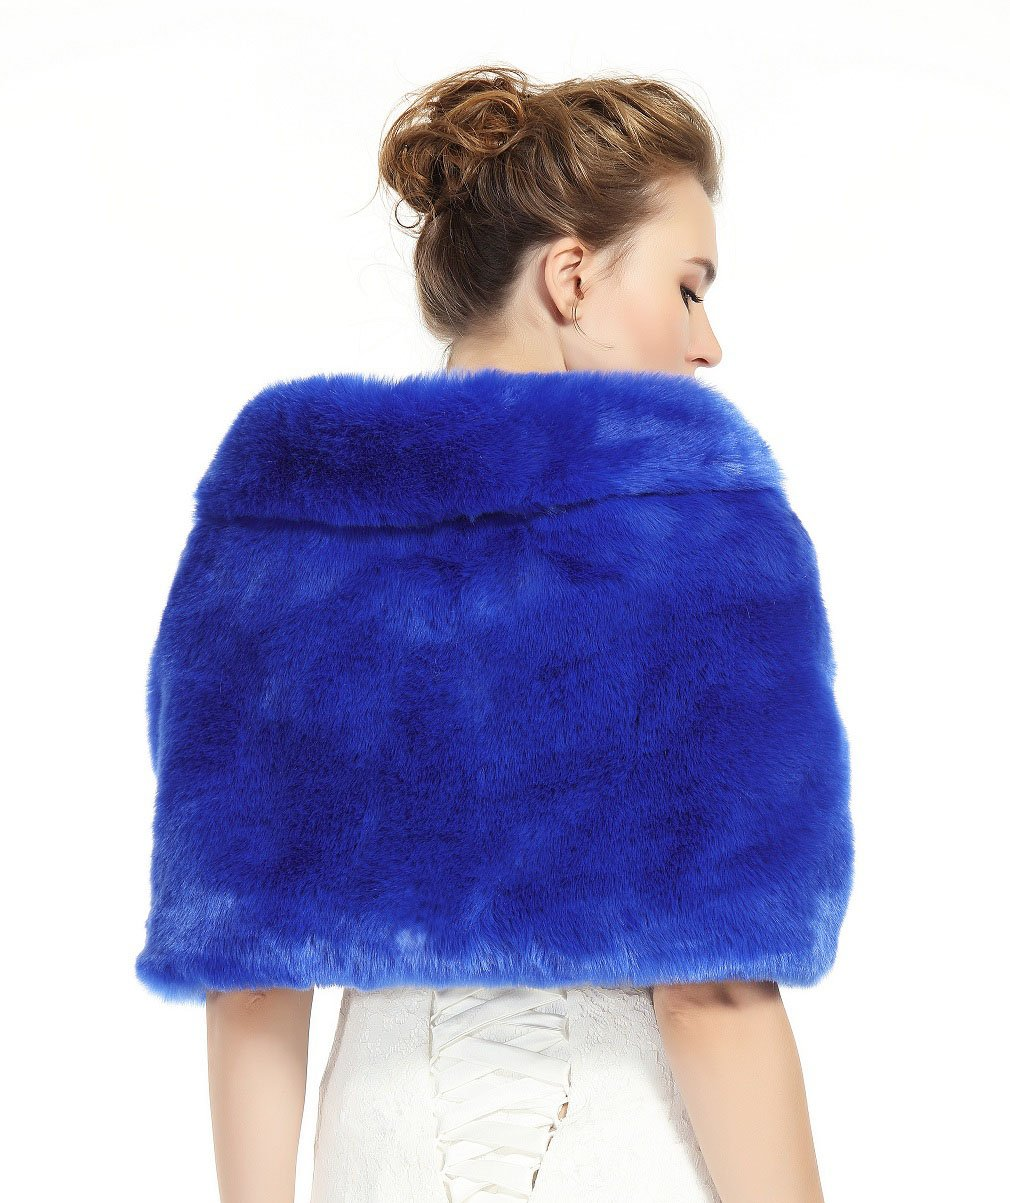 Faux Fur Shawl Wrap Stole Shrug Winter Bridal Wedding Cover Up Royal Blue Size M by MISSYDRESS (Image #4)